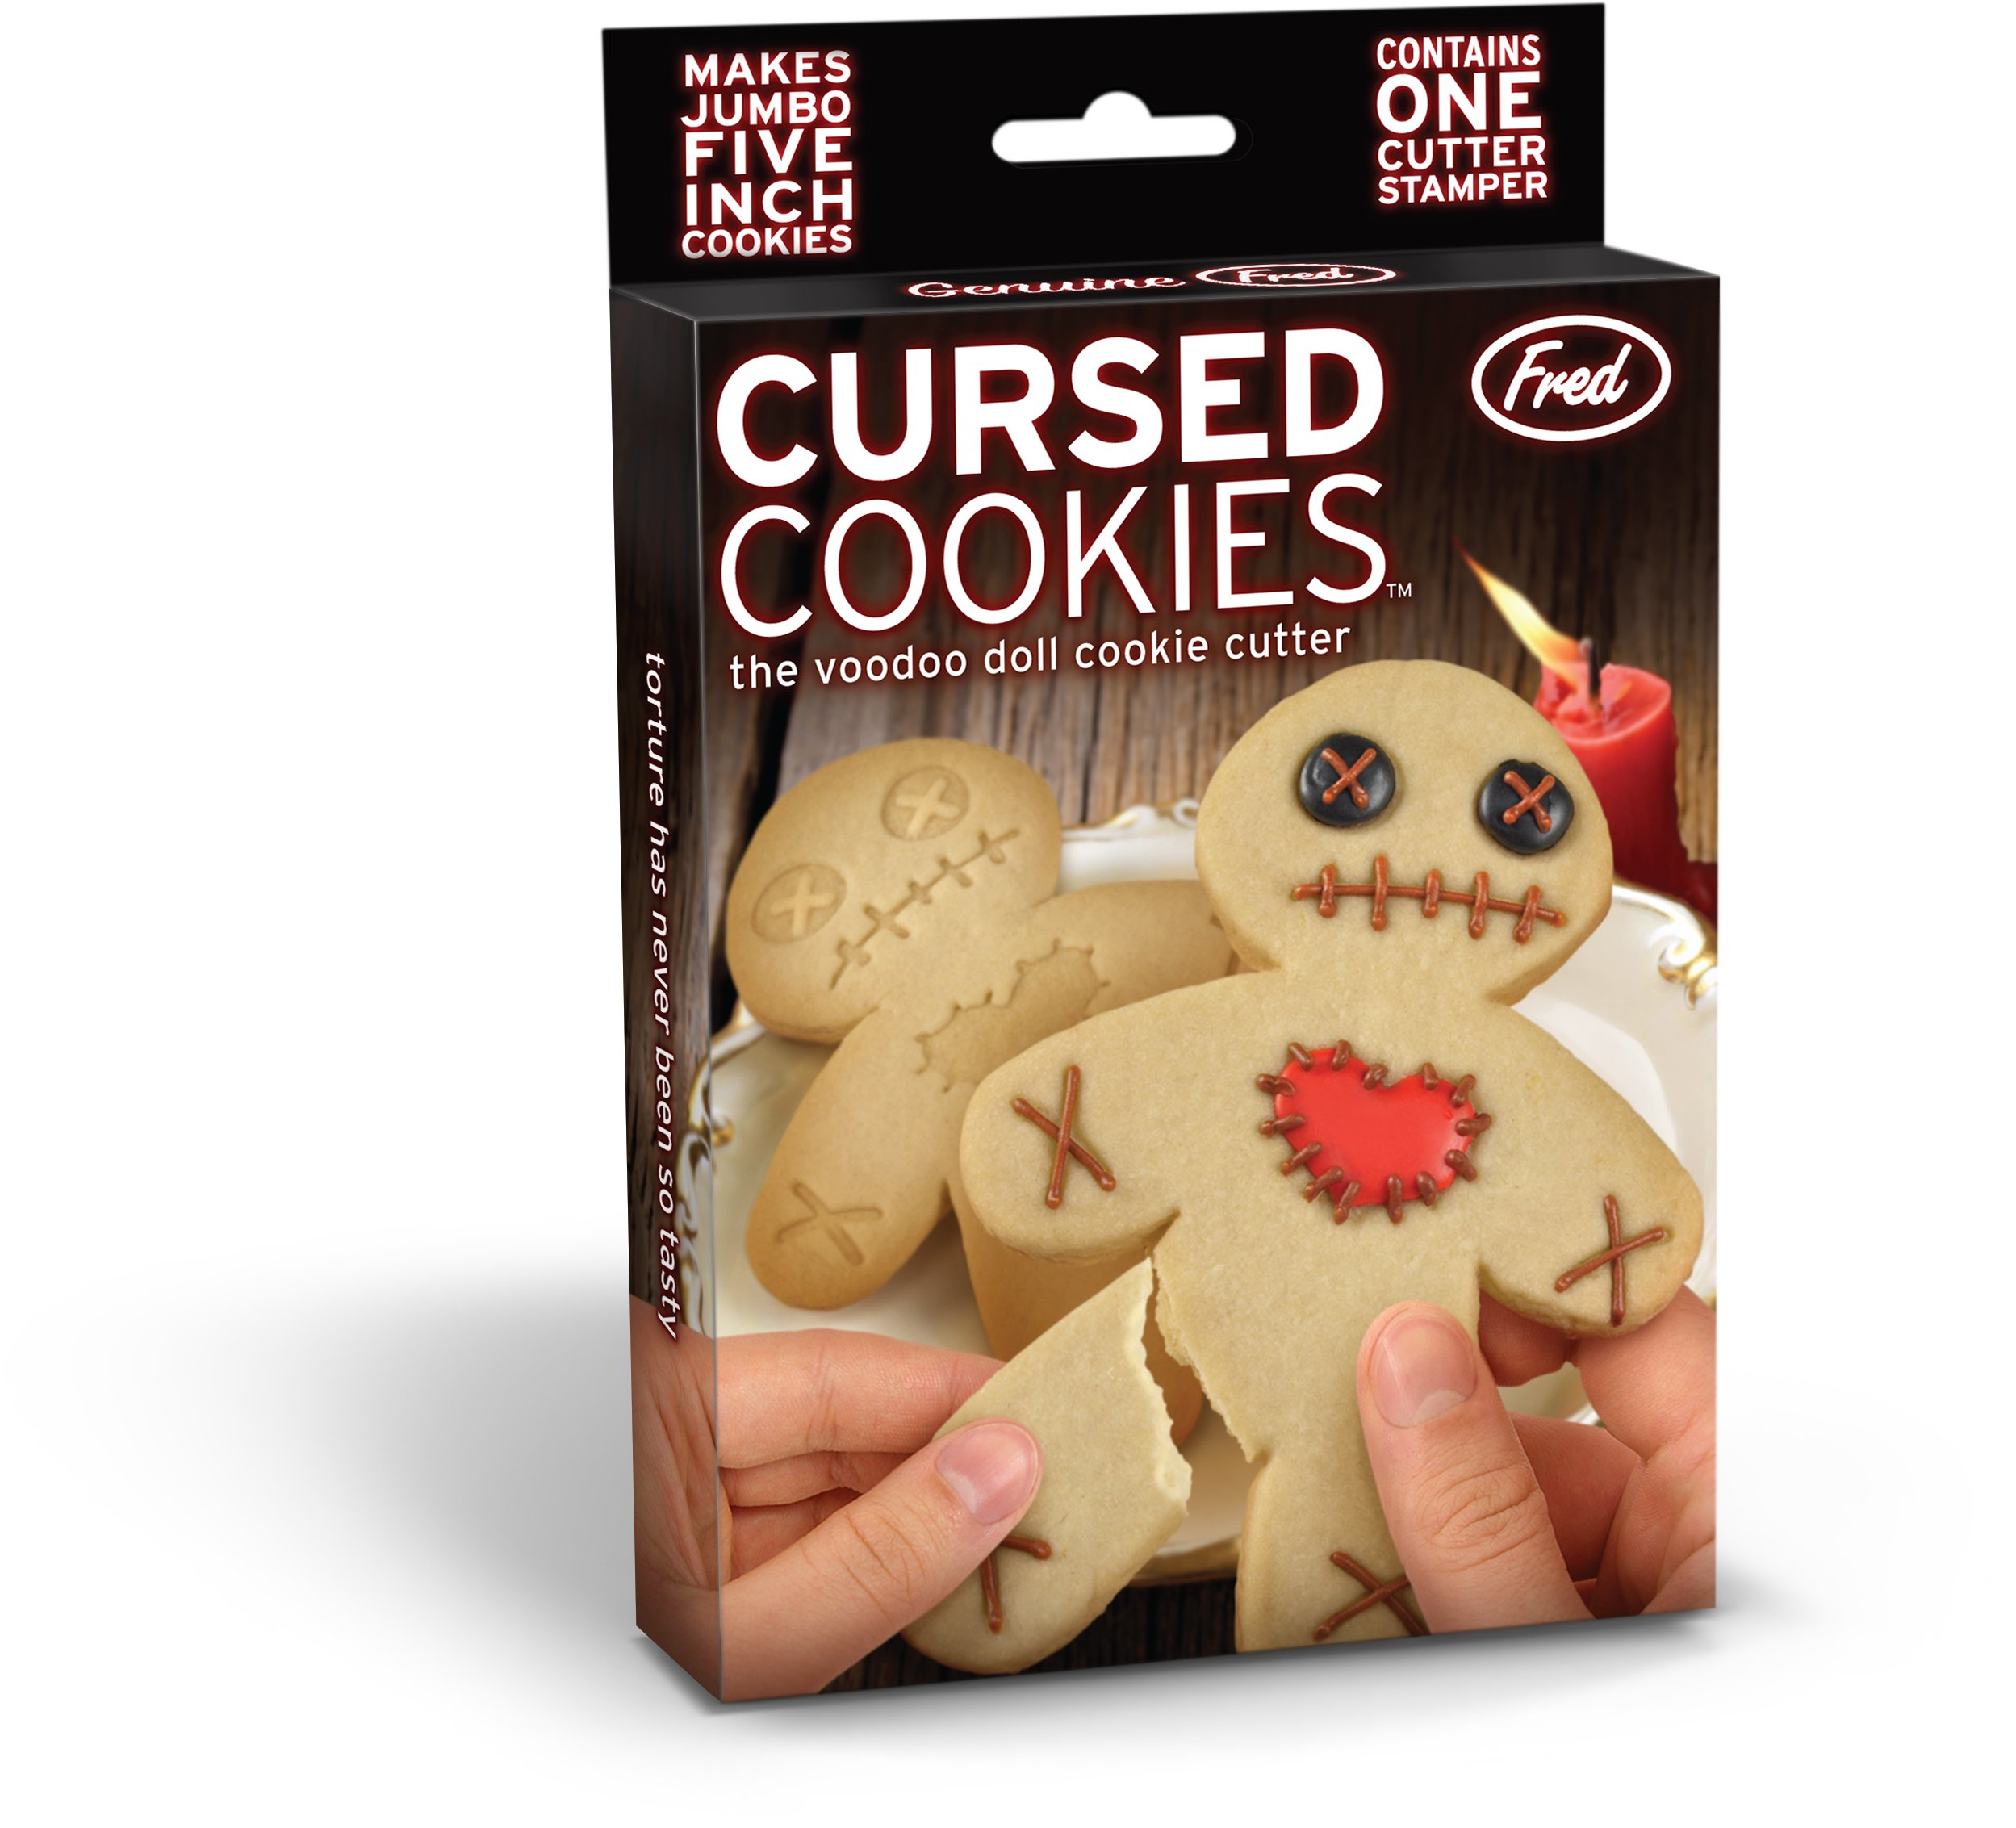 Fred CURSED COOKIES Voodoo Doll Cookie Cutter/Stamper by Fred & Friends (Image #1)